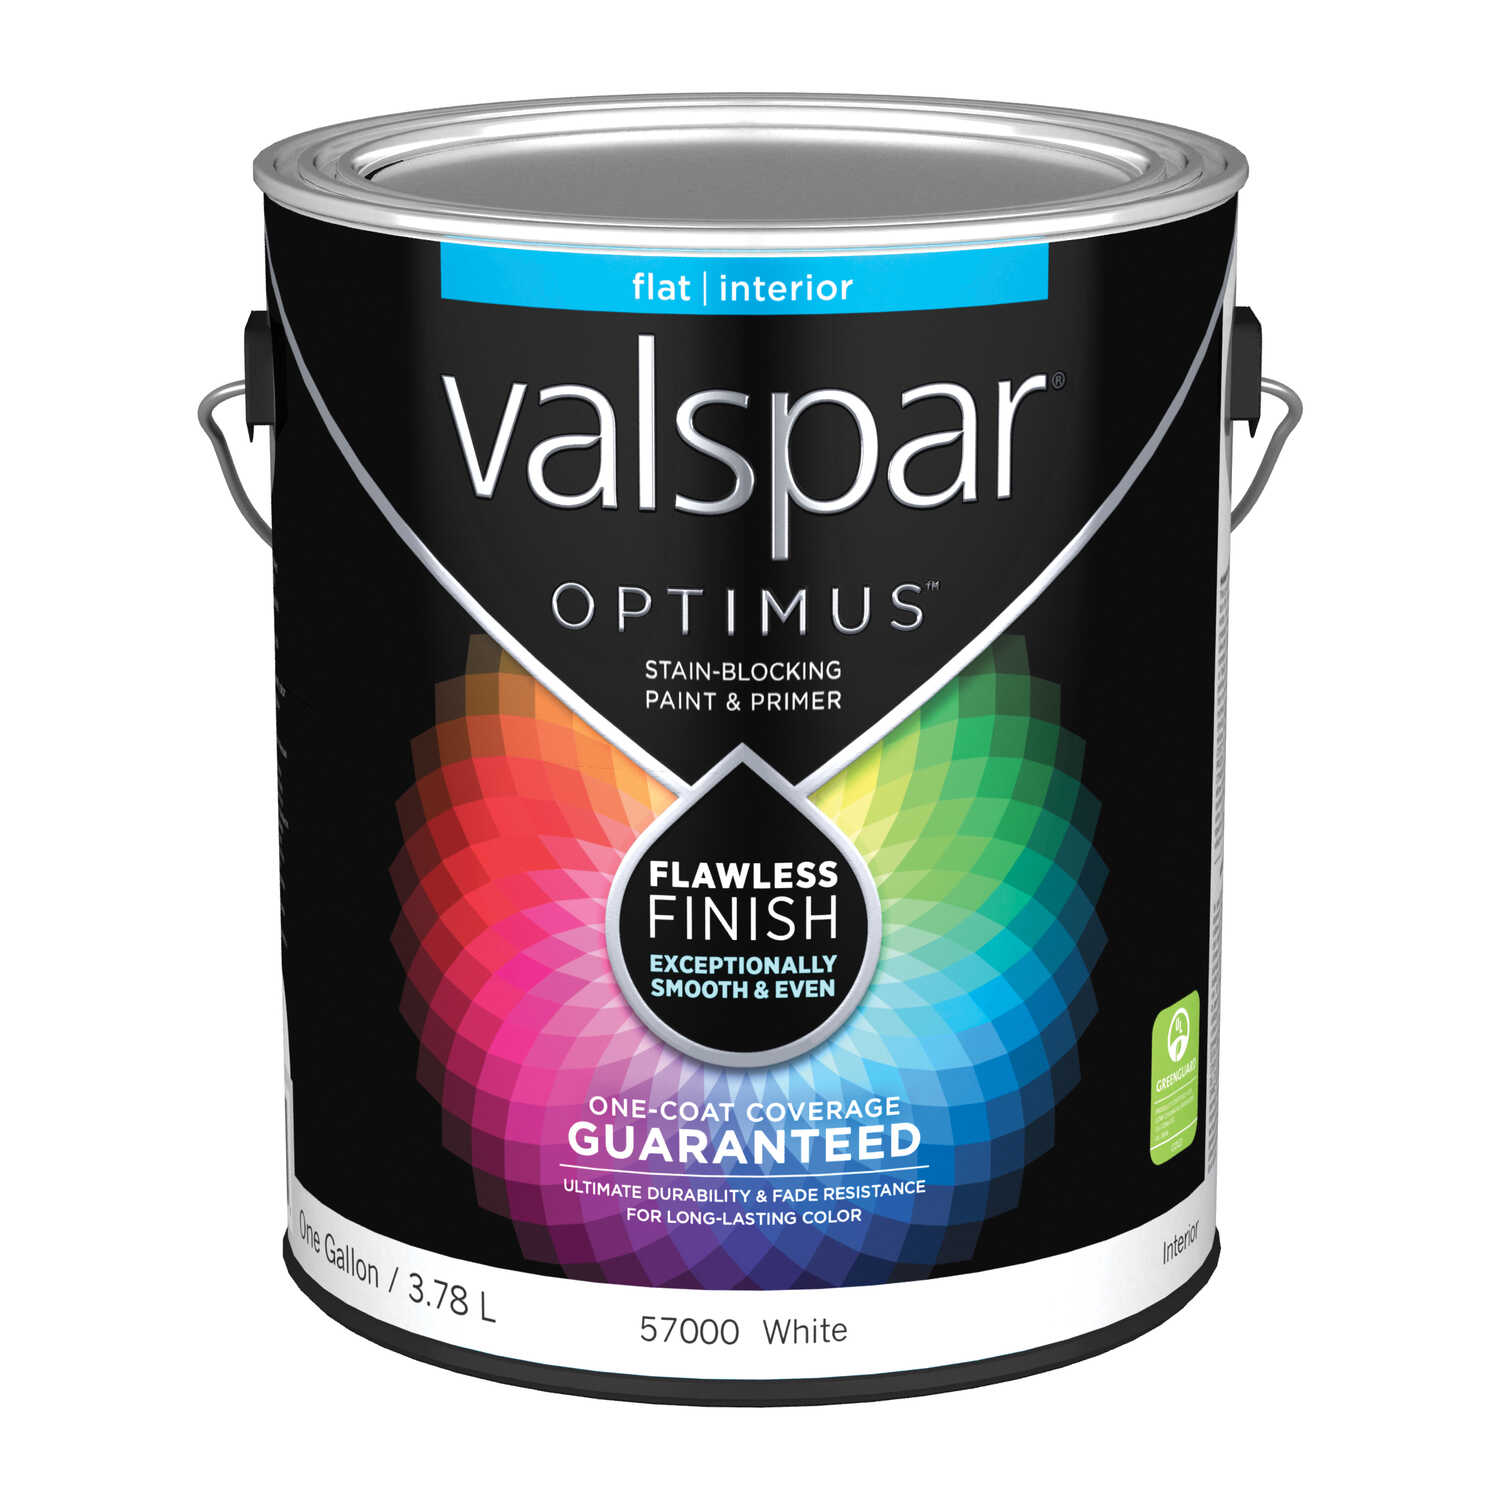 Valspar  Optimus  Flat  Basic White  1 gal. Paint and Primer  Acrylic Latex